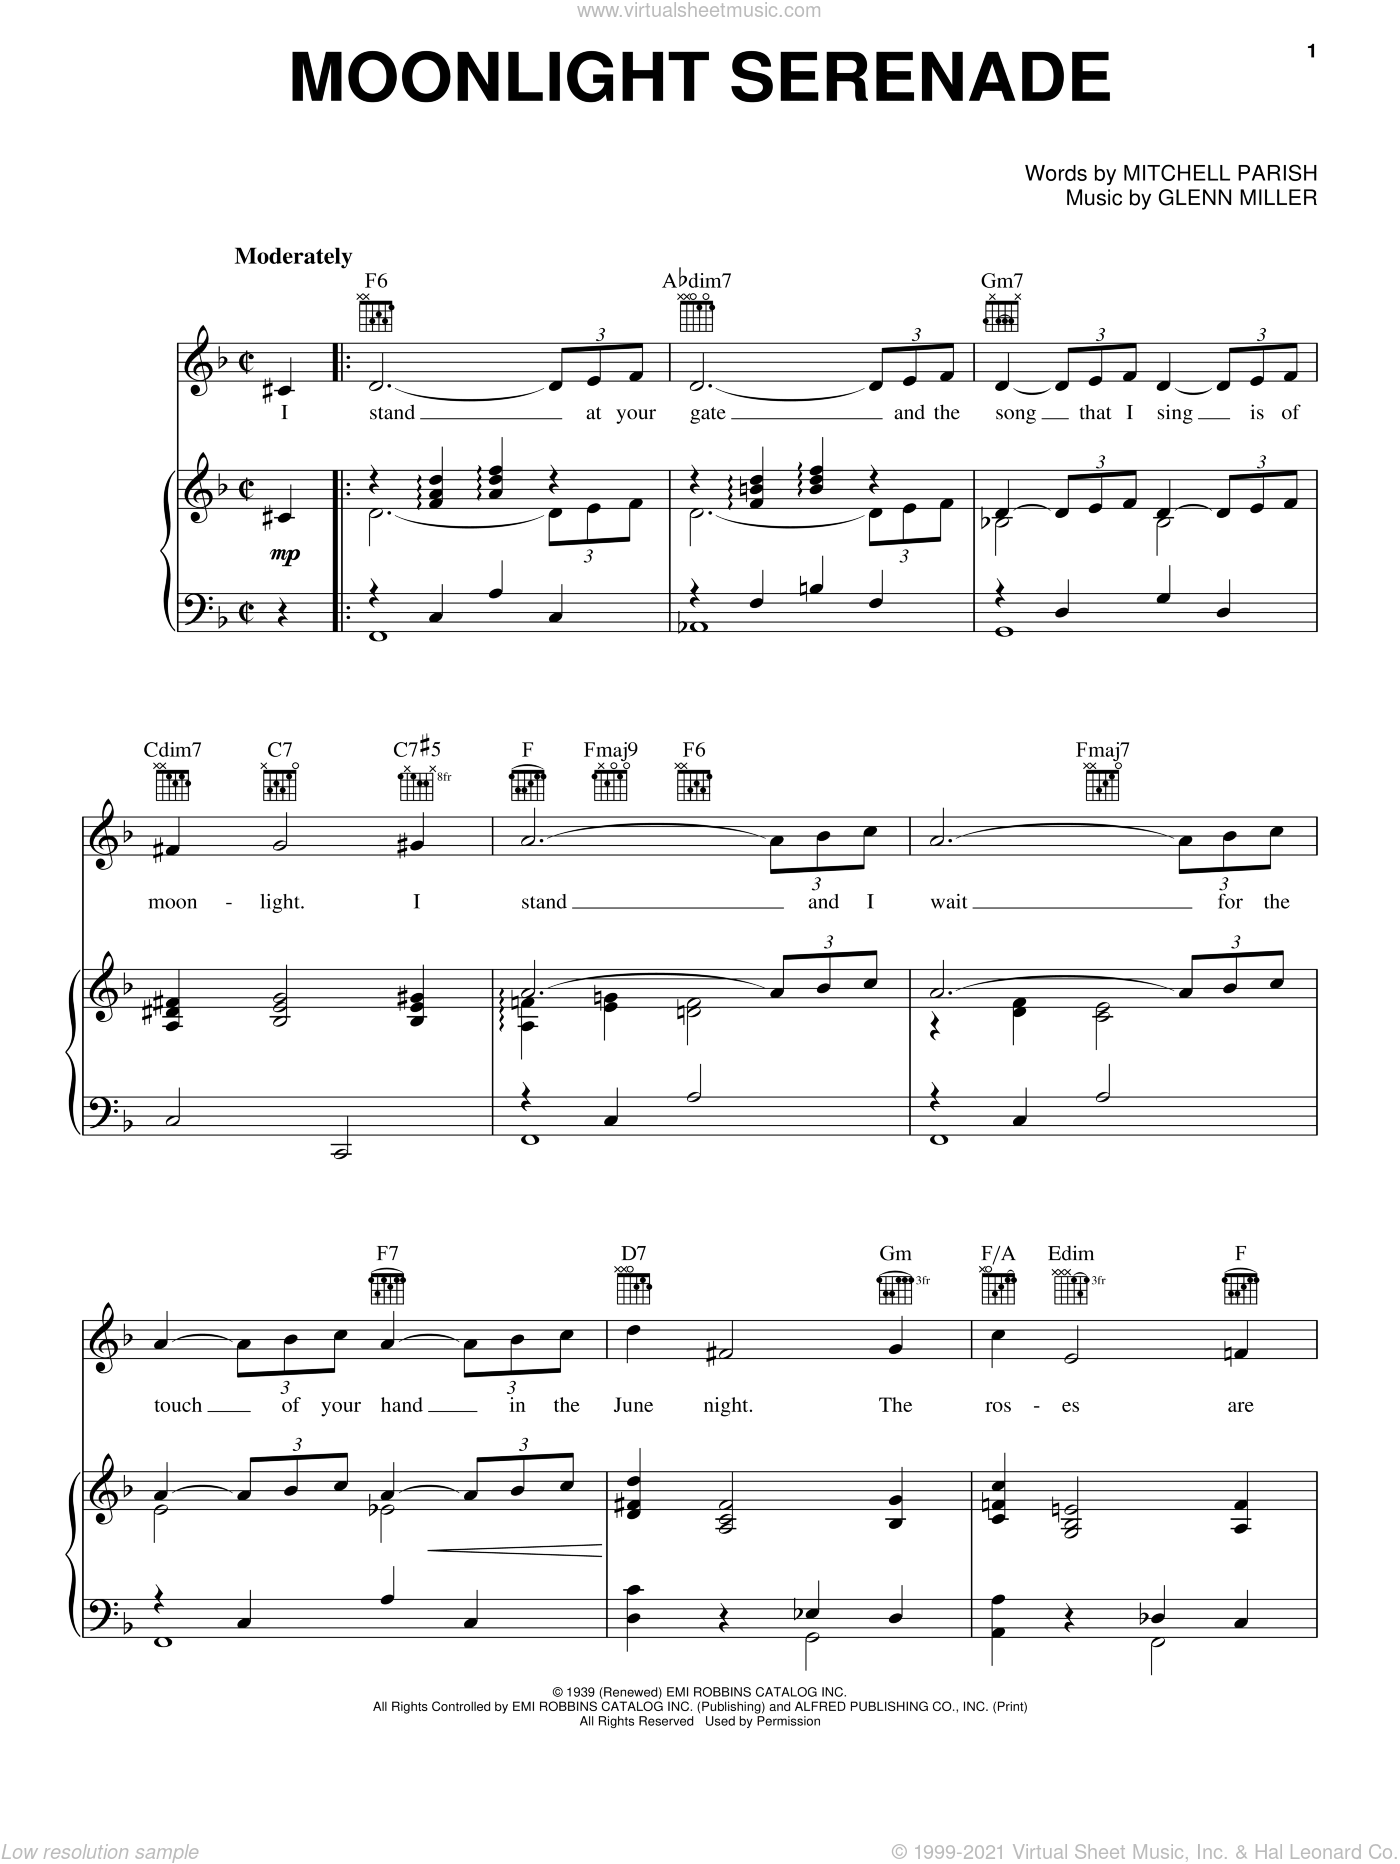 Moonlight Serenade sheet music for voice, piano or guitar by Mitchell Parish